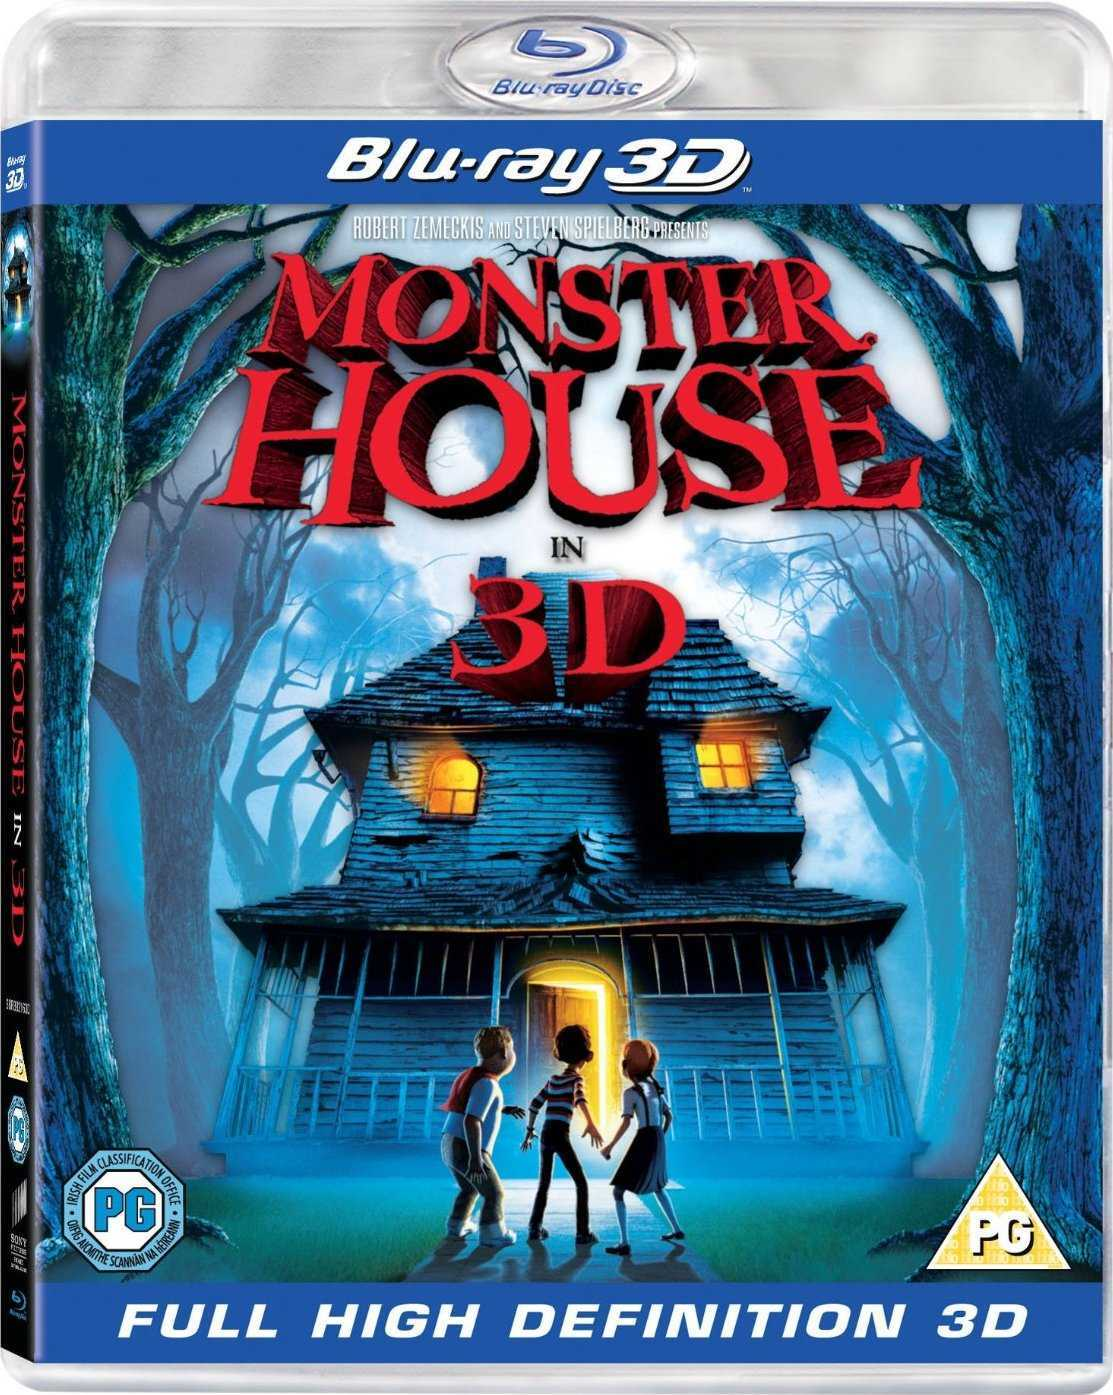 Monster House (2006) Full HD 1080p Untoched DTS-HD ITA ENG + AC3 SUb - DDN